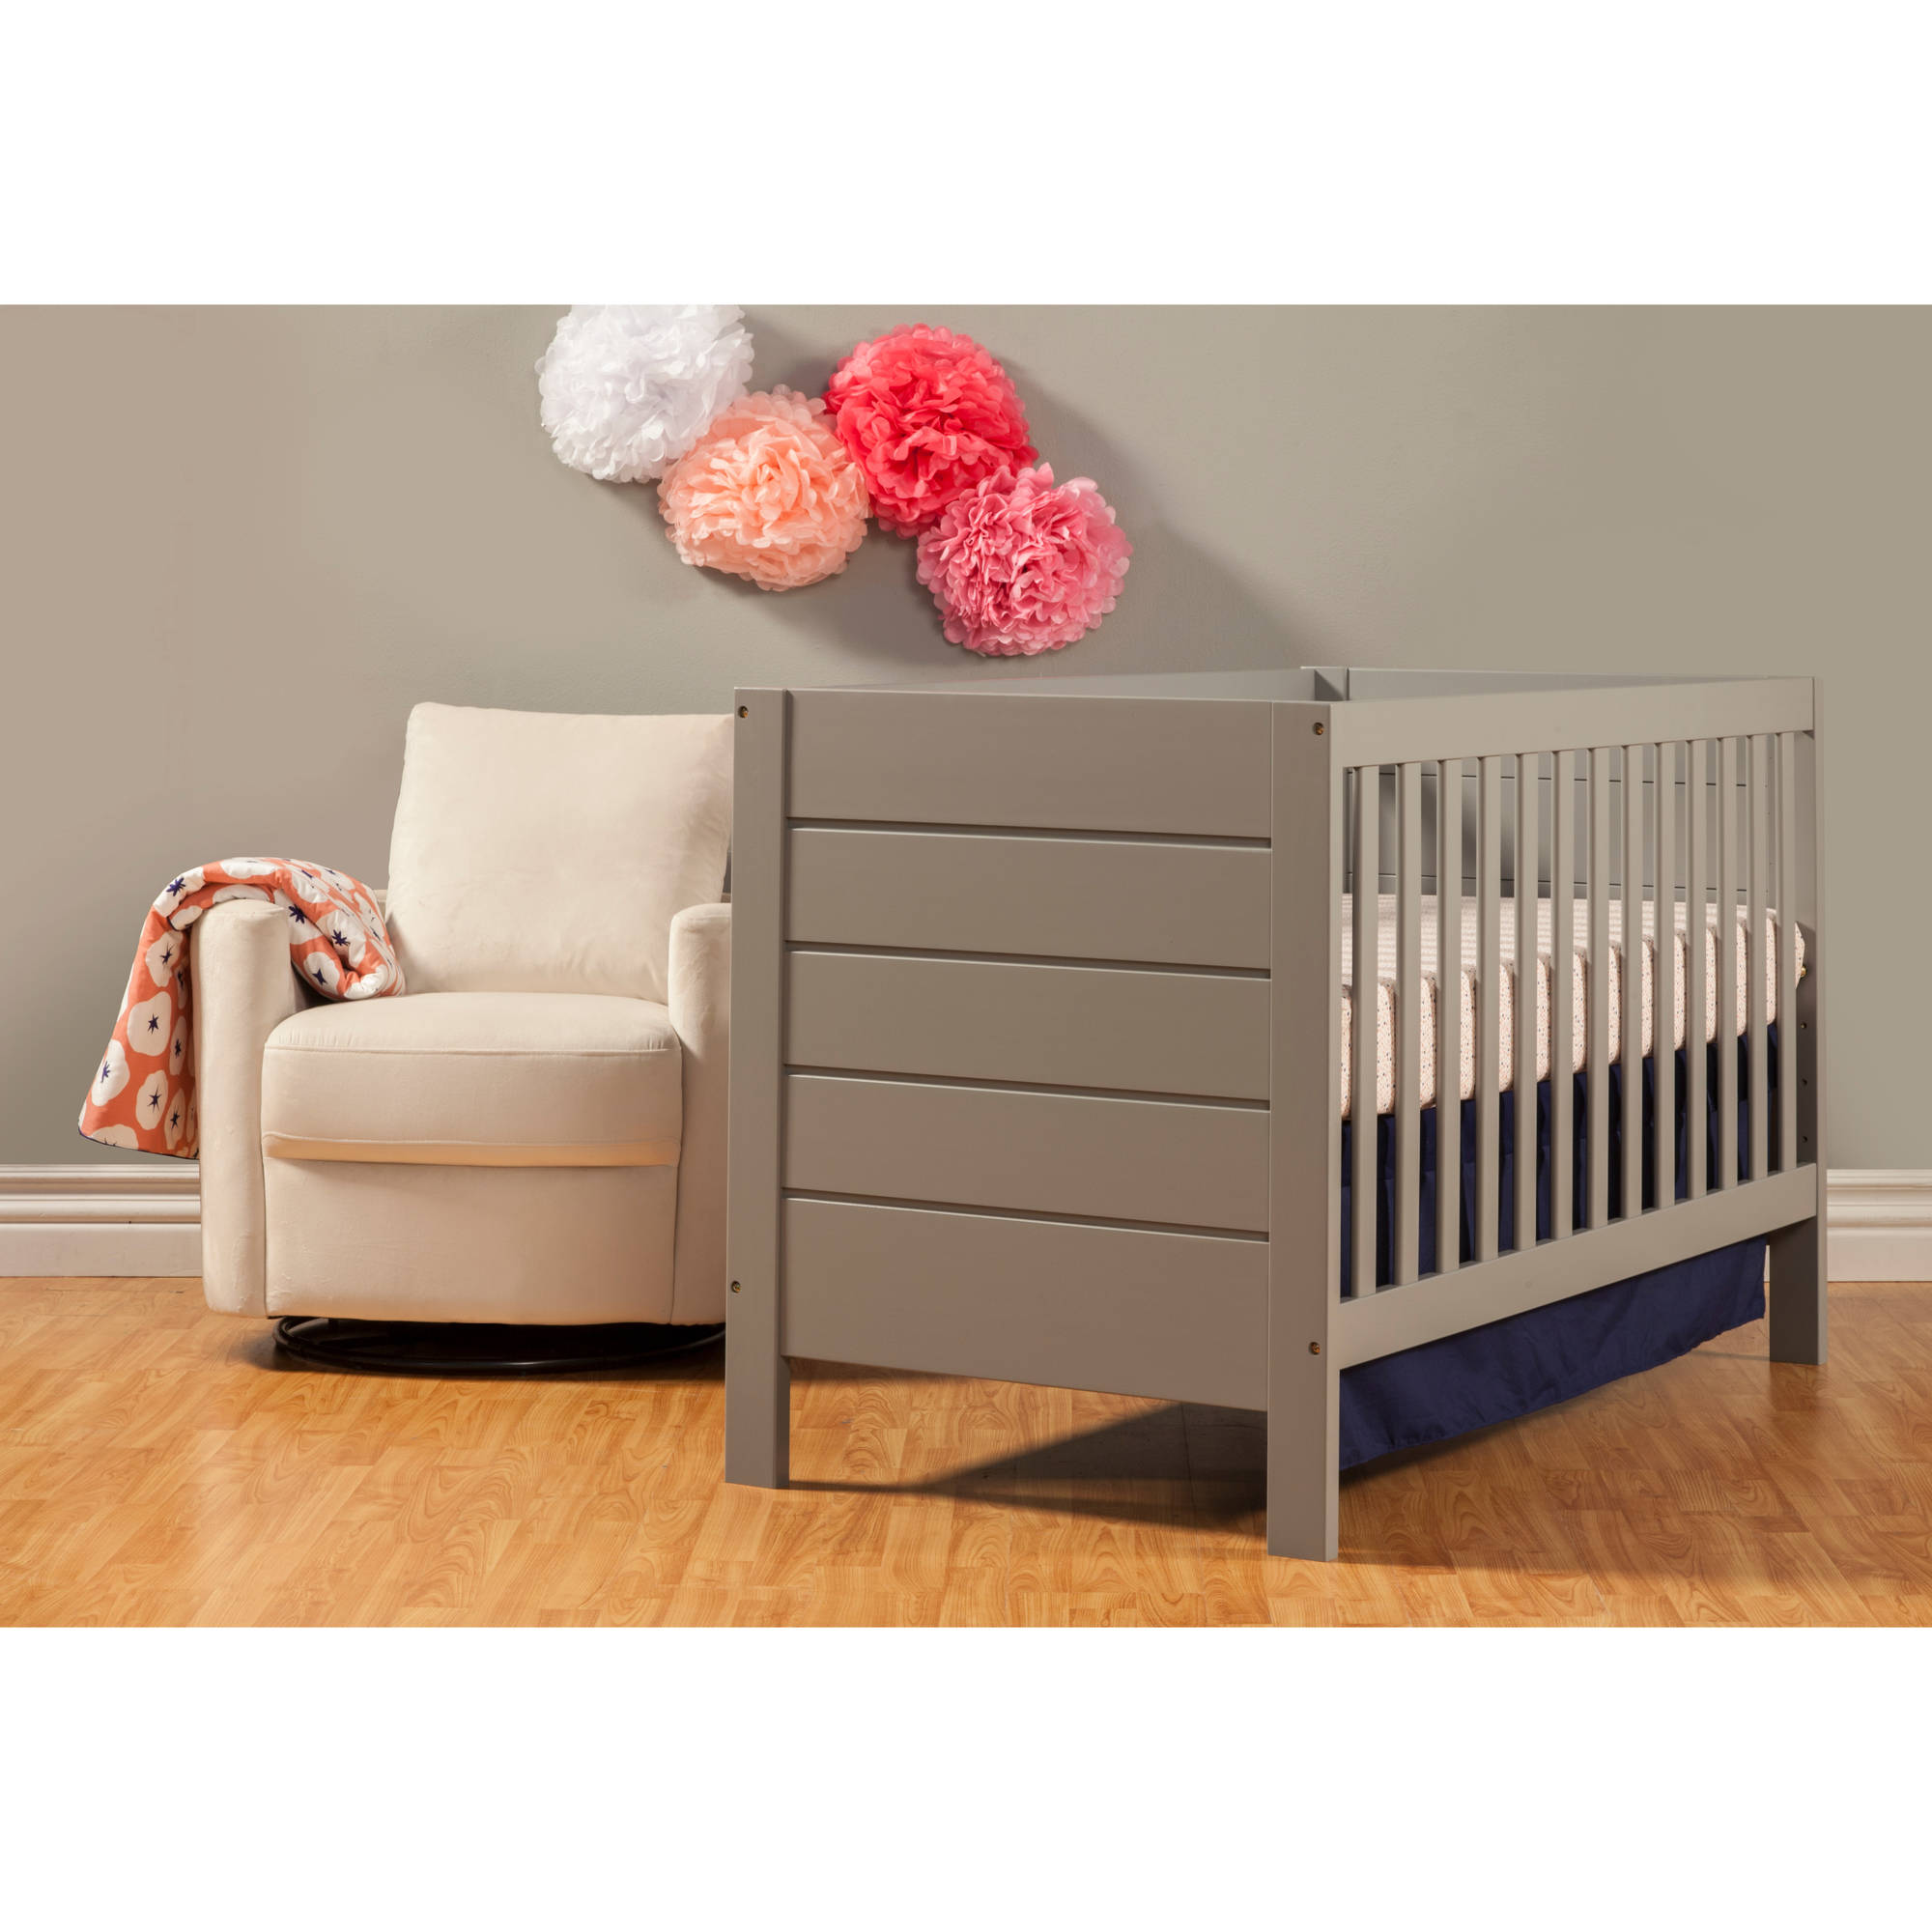 Baby Mod Modena 3 in 1 Convertible Crib Gray Walmart